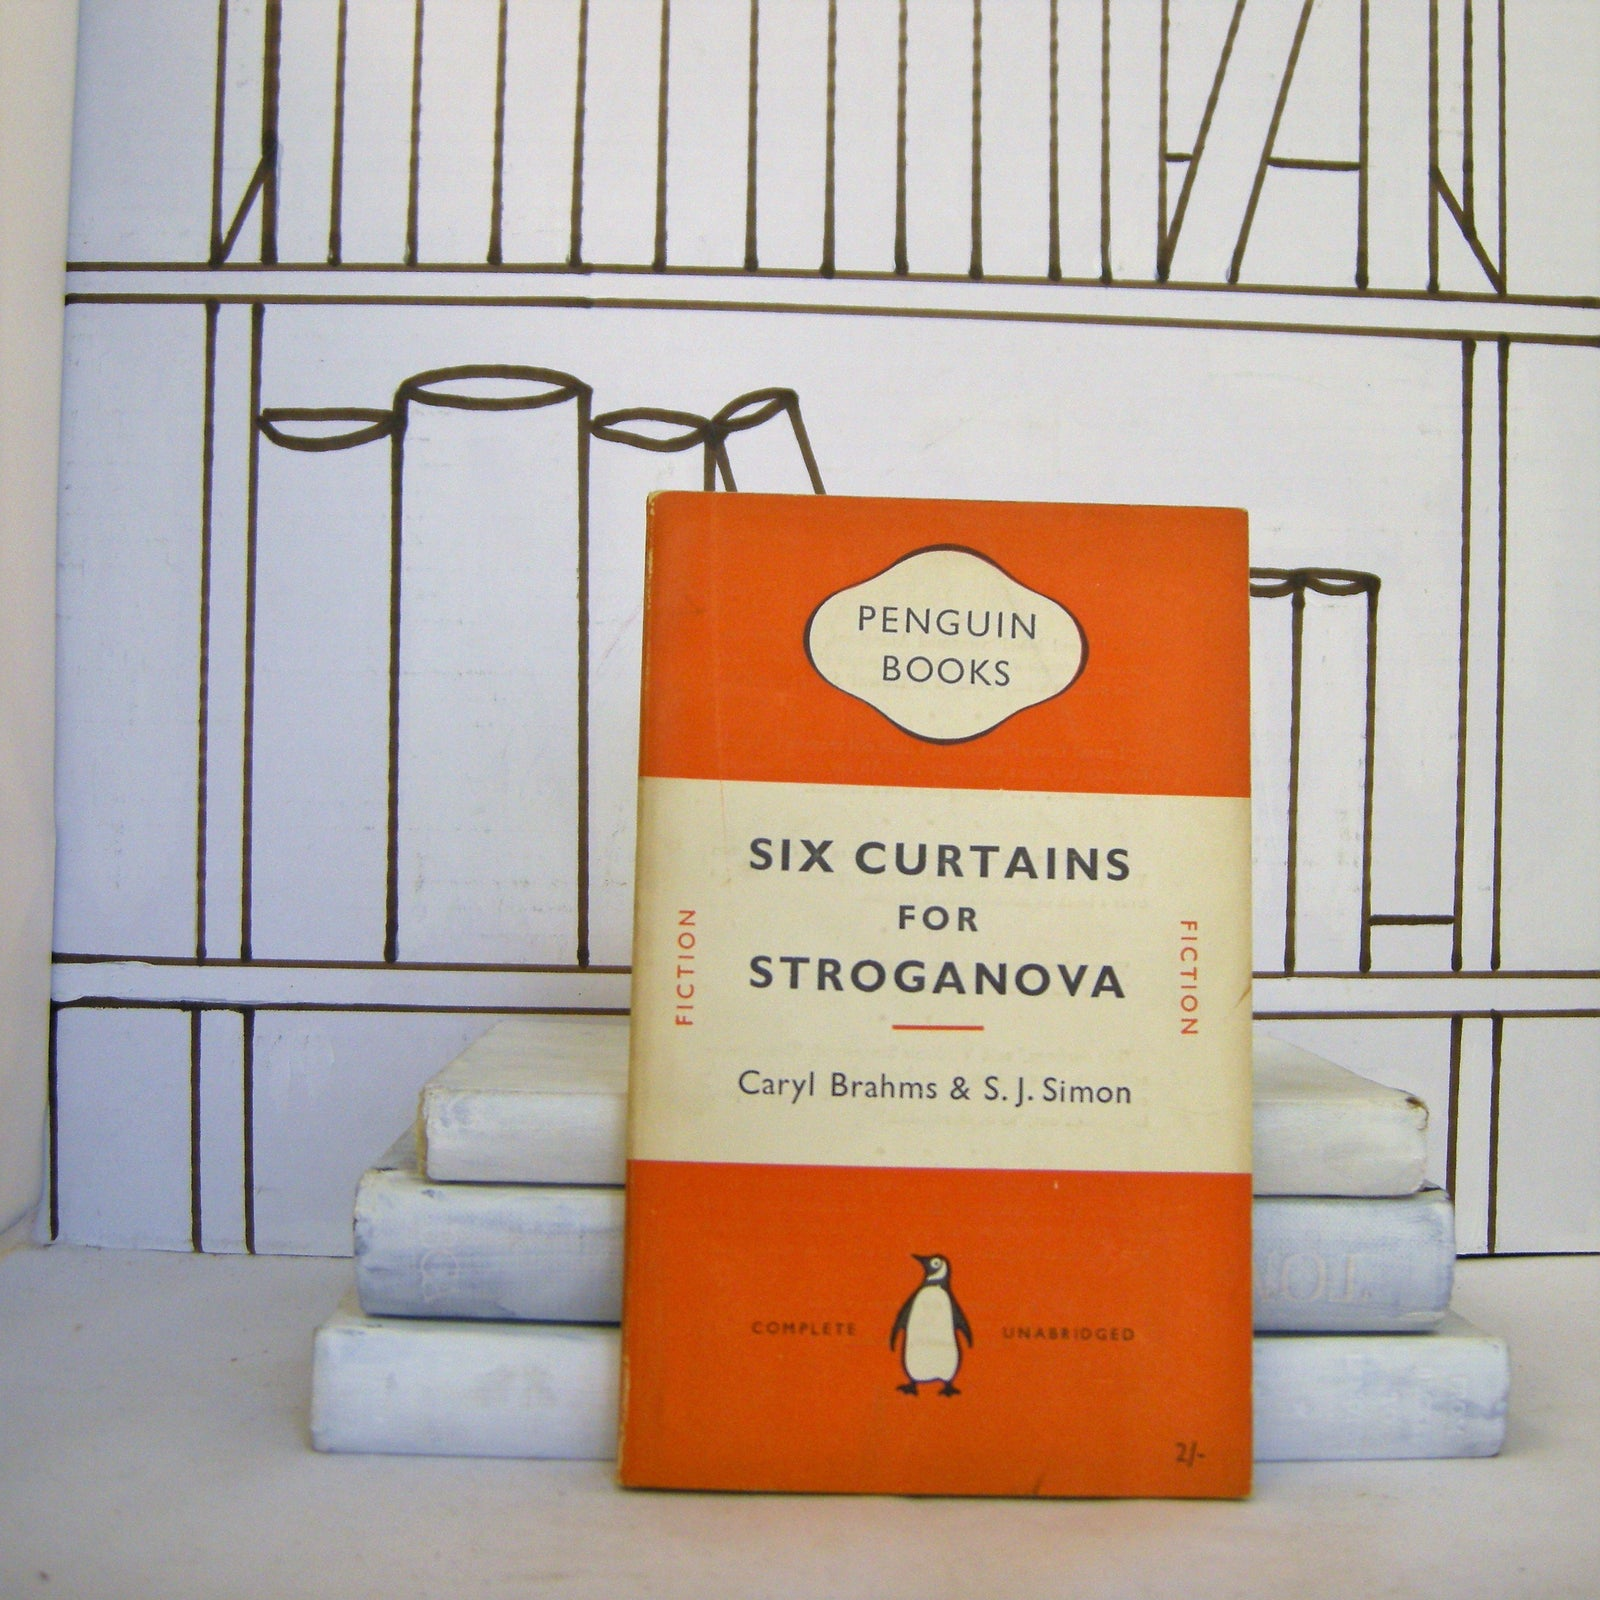 Book - Six Curtains For Stroganova By Caryl Brahms & S. J. Simon (Vintage, Penguin)